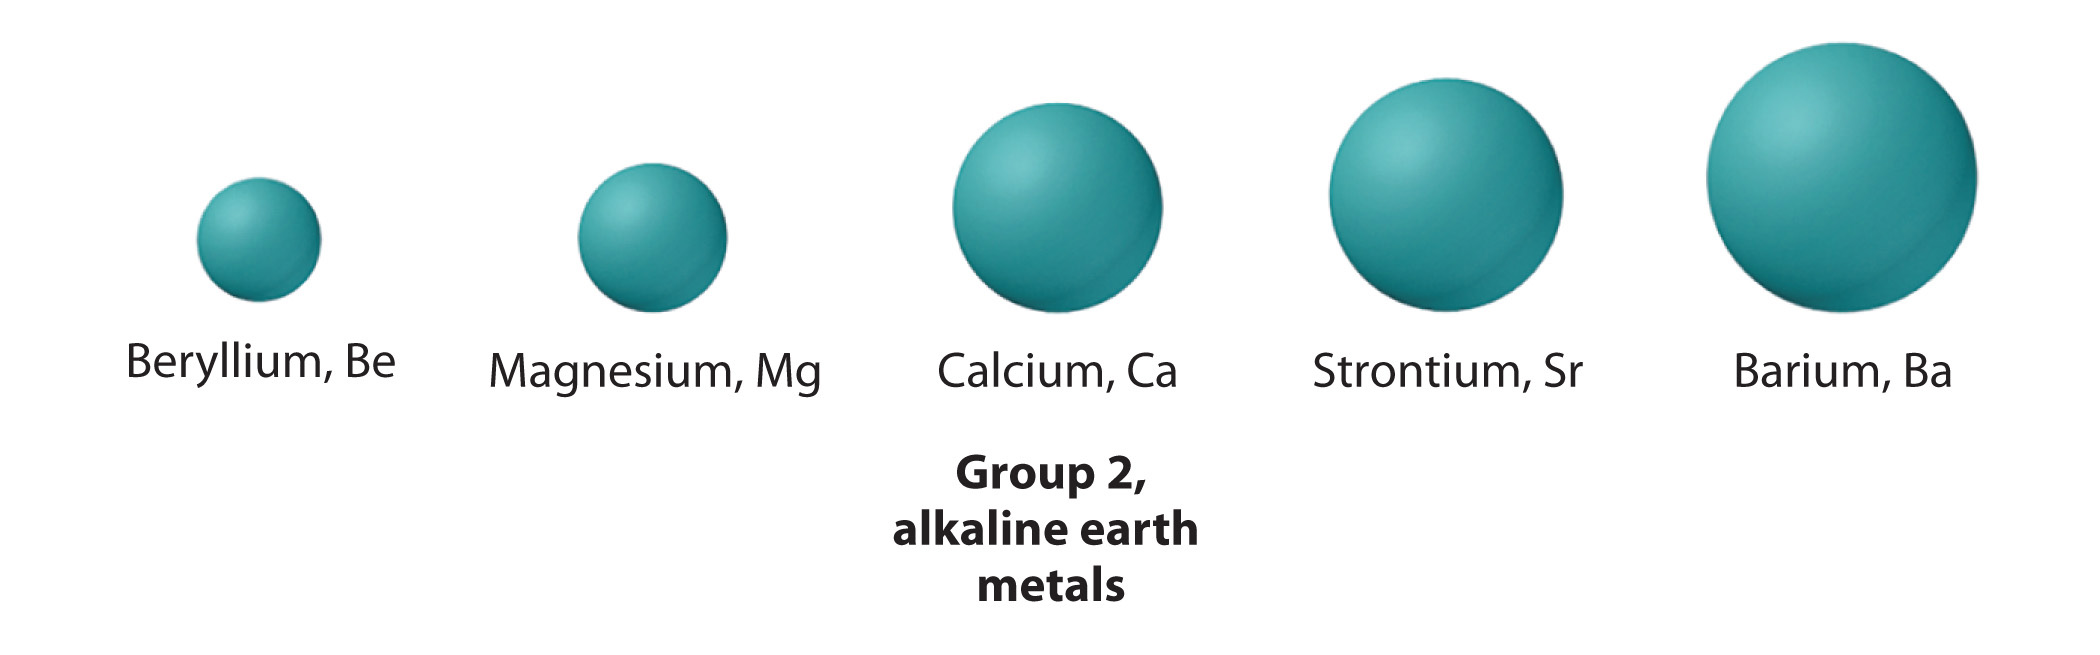 http://musketzequ.es.tl/common-physical-properties-alkaline-earth-metals.htm